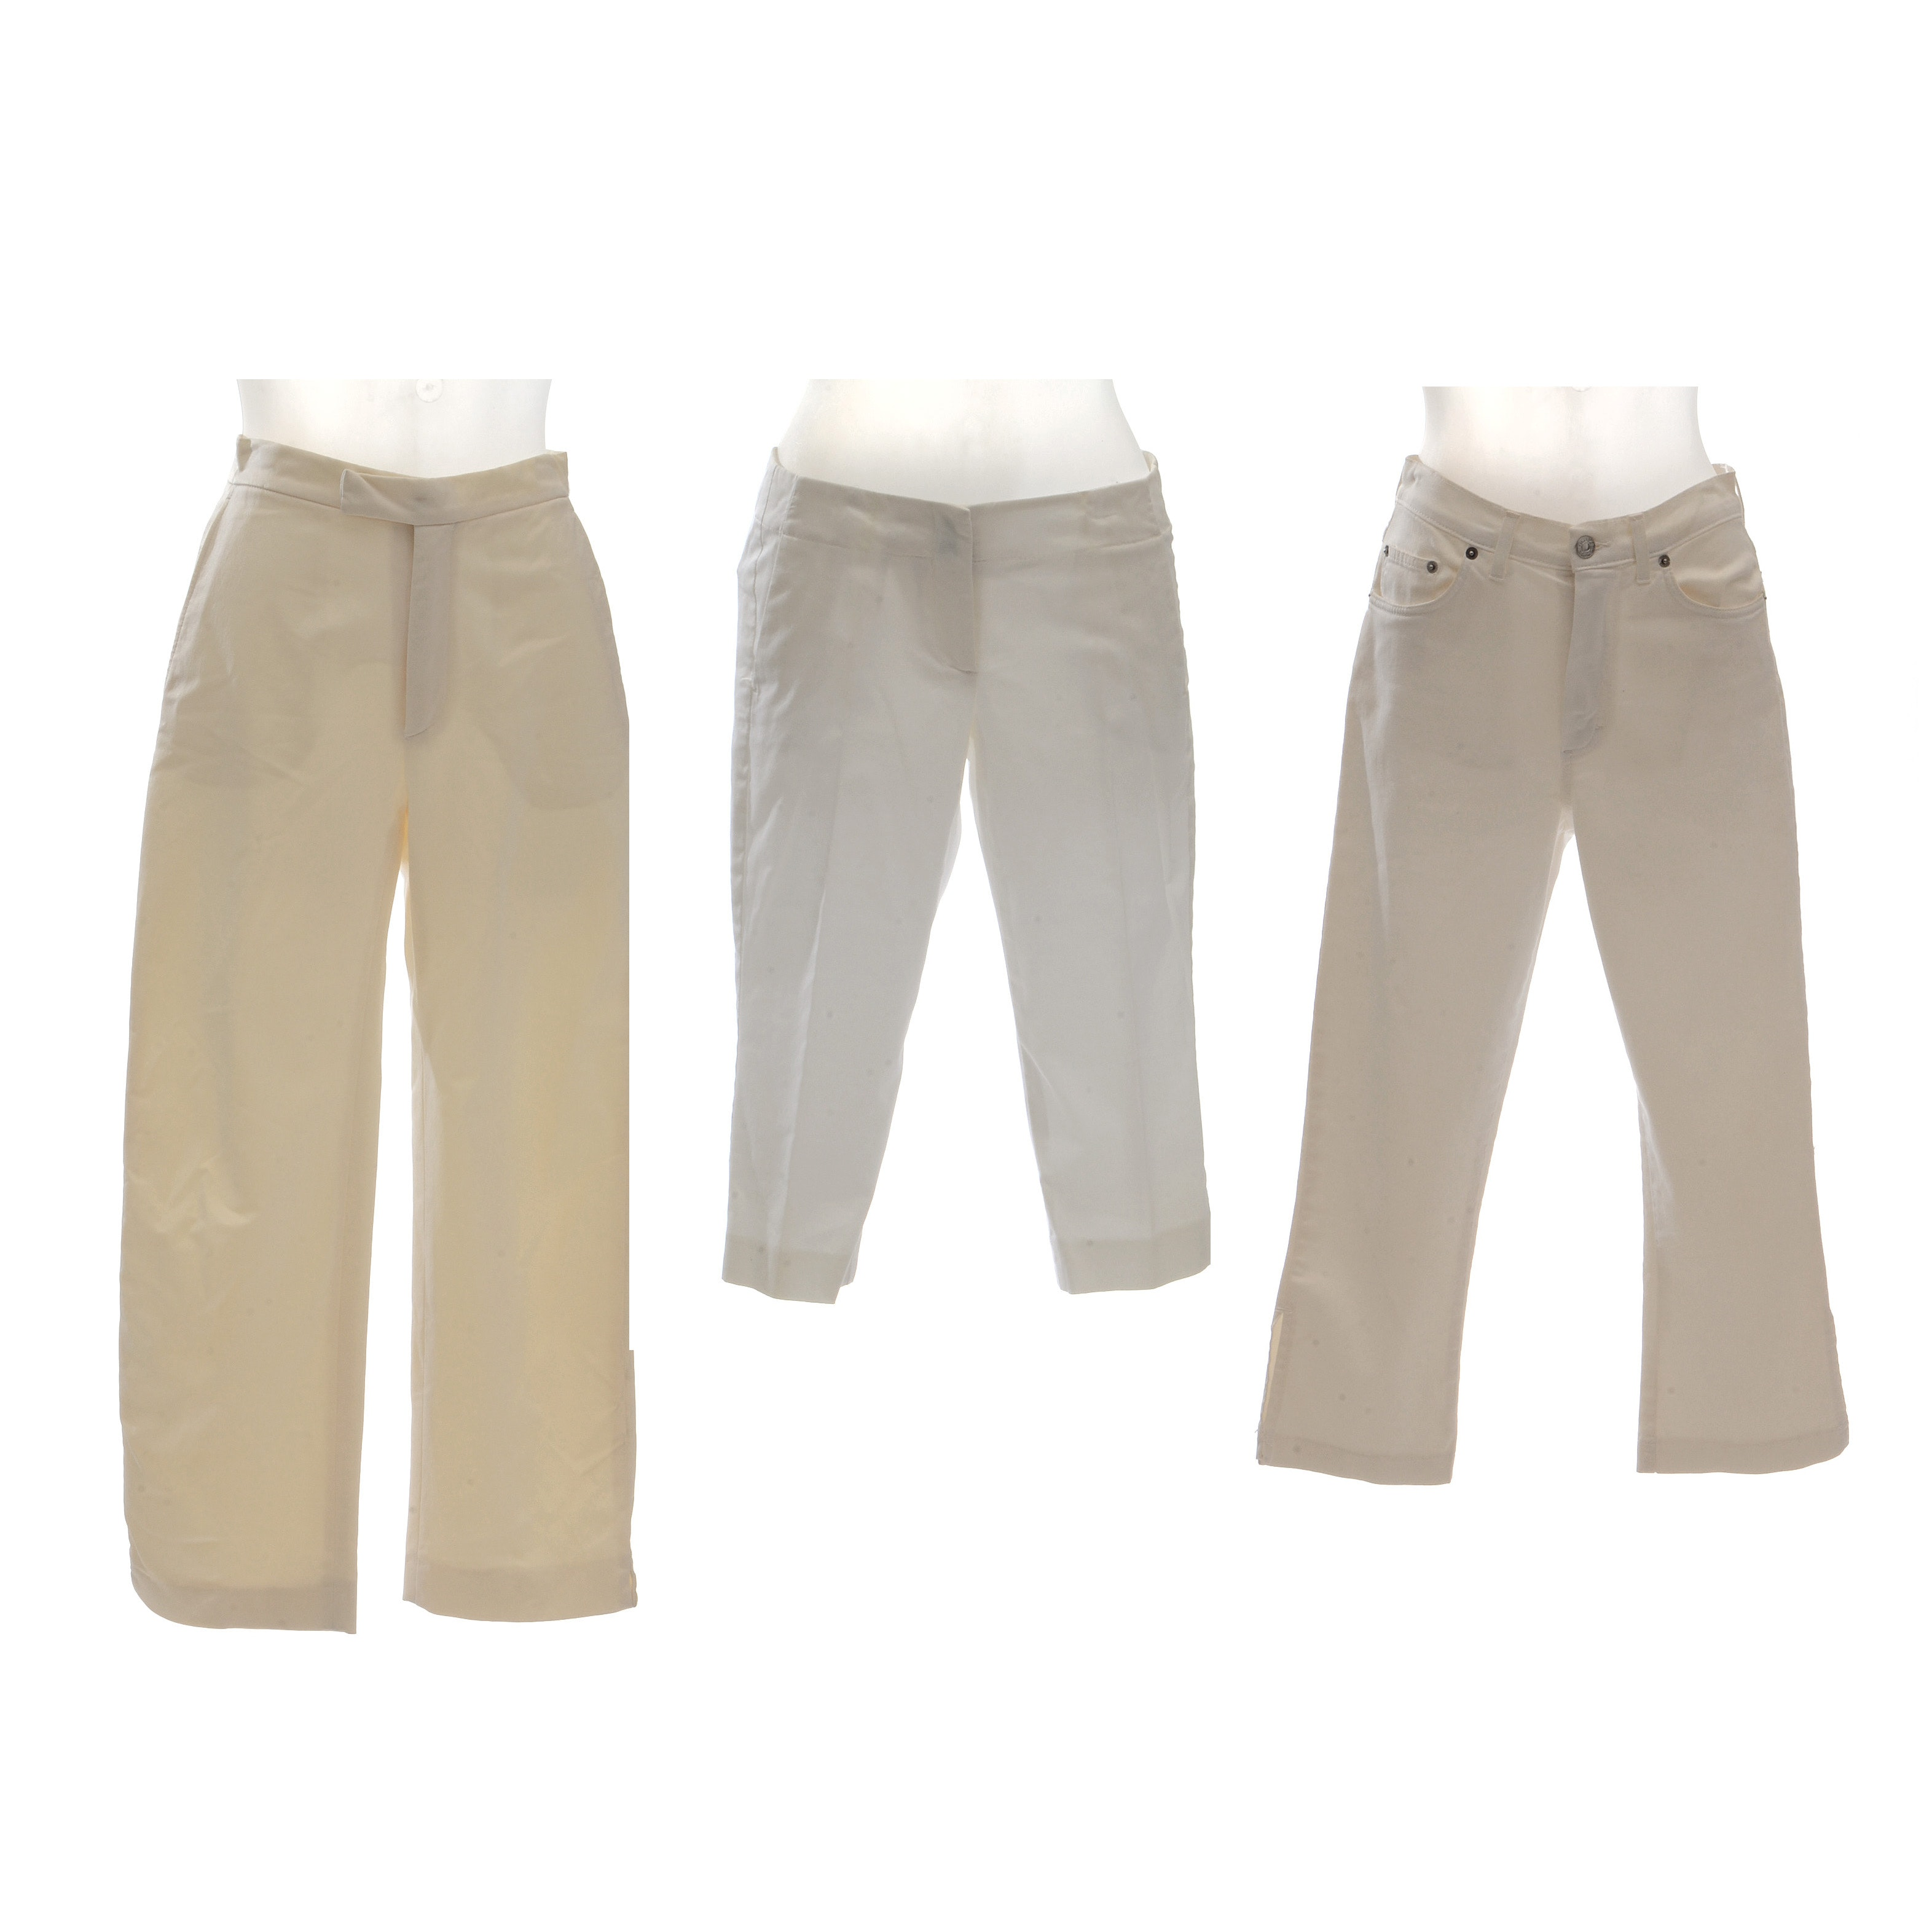 White and Cream Women's Pants